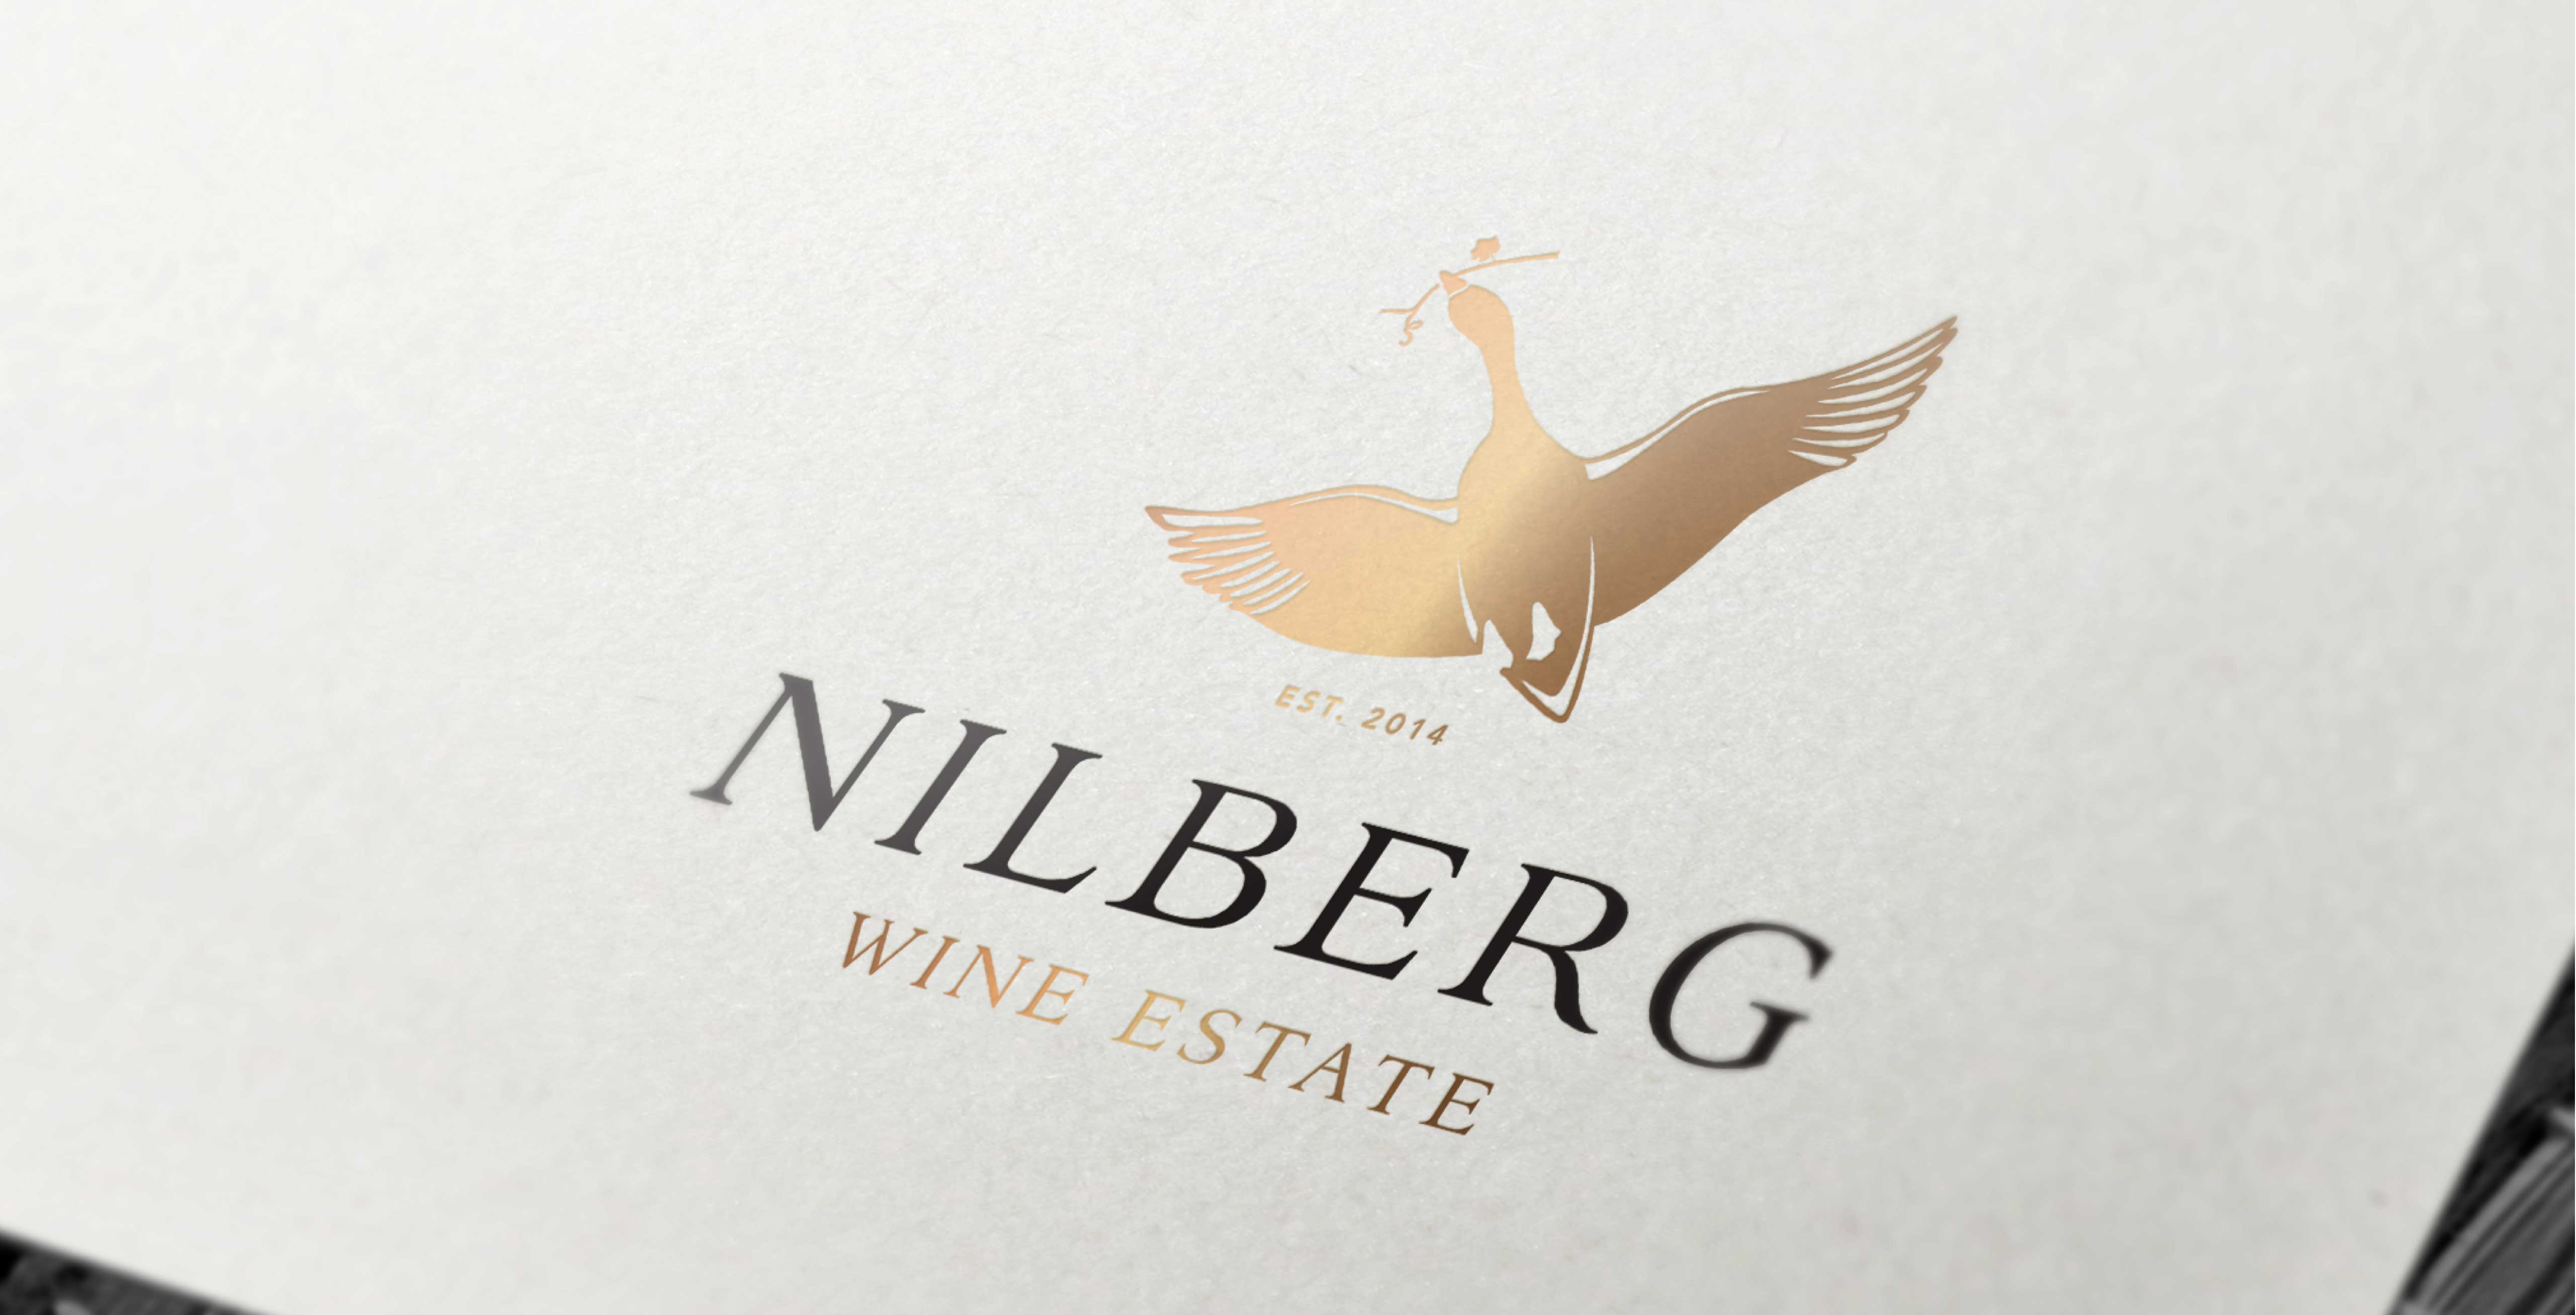 Nilberg Wine Estate